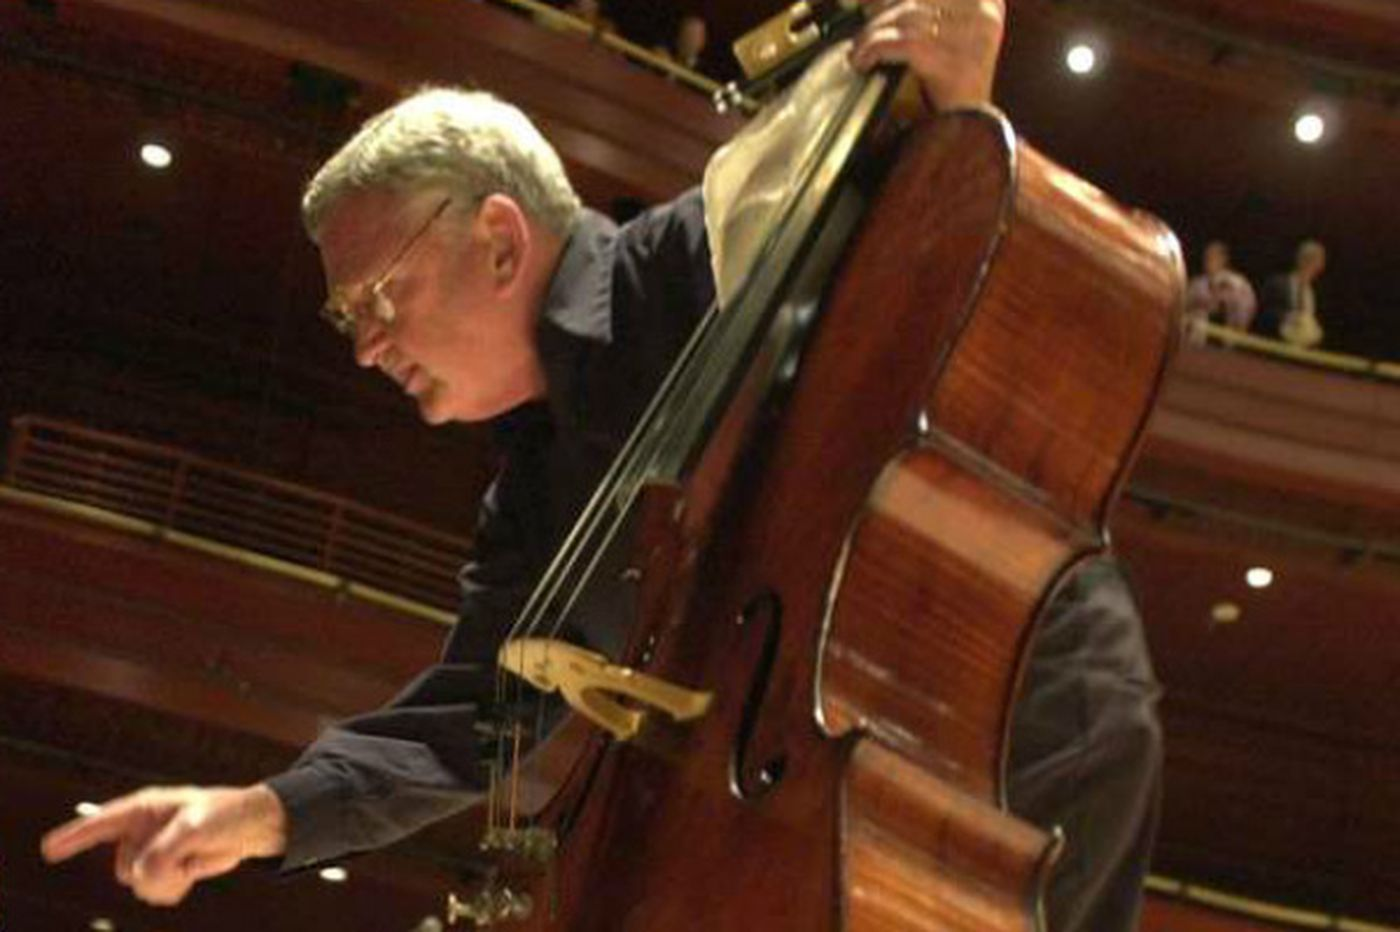 Service set for Phila. Orchestra cellist William Stokking, 81